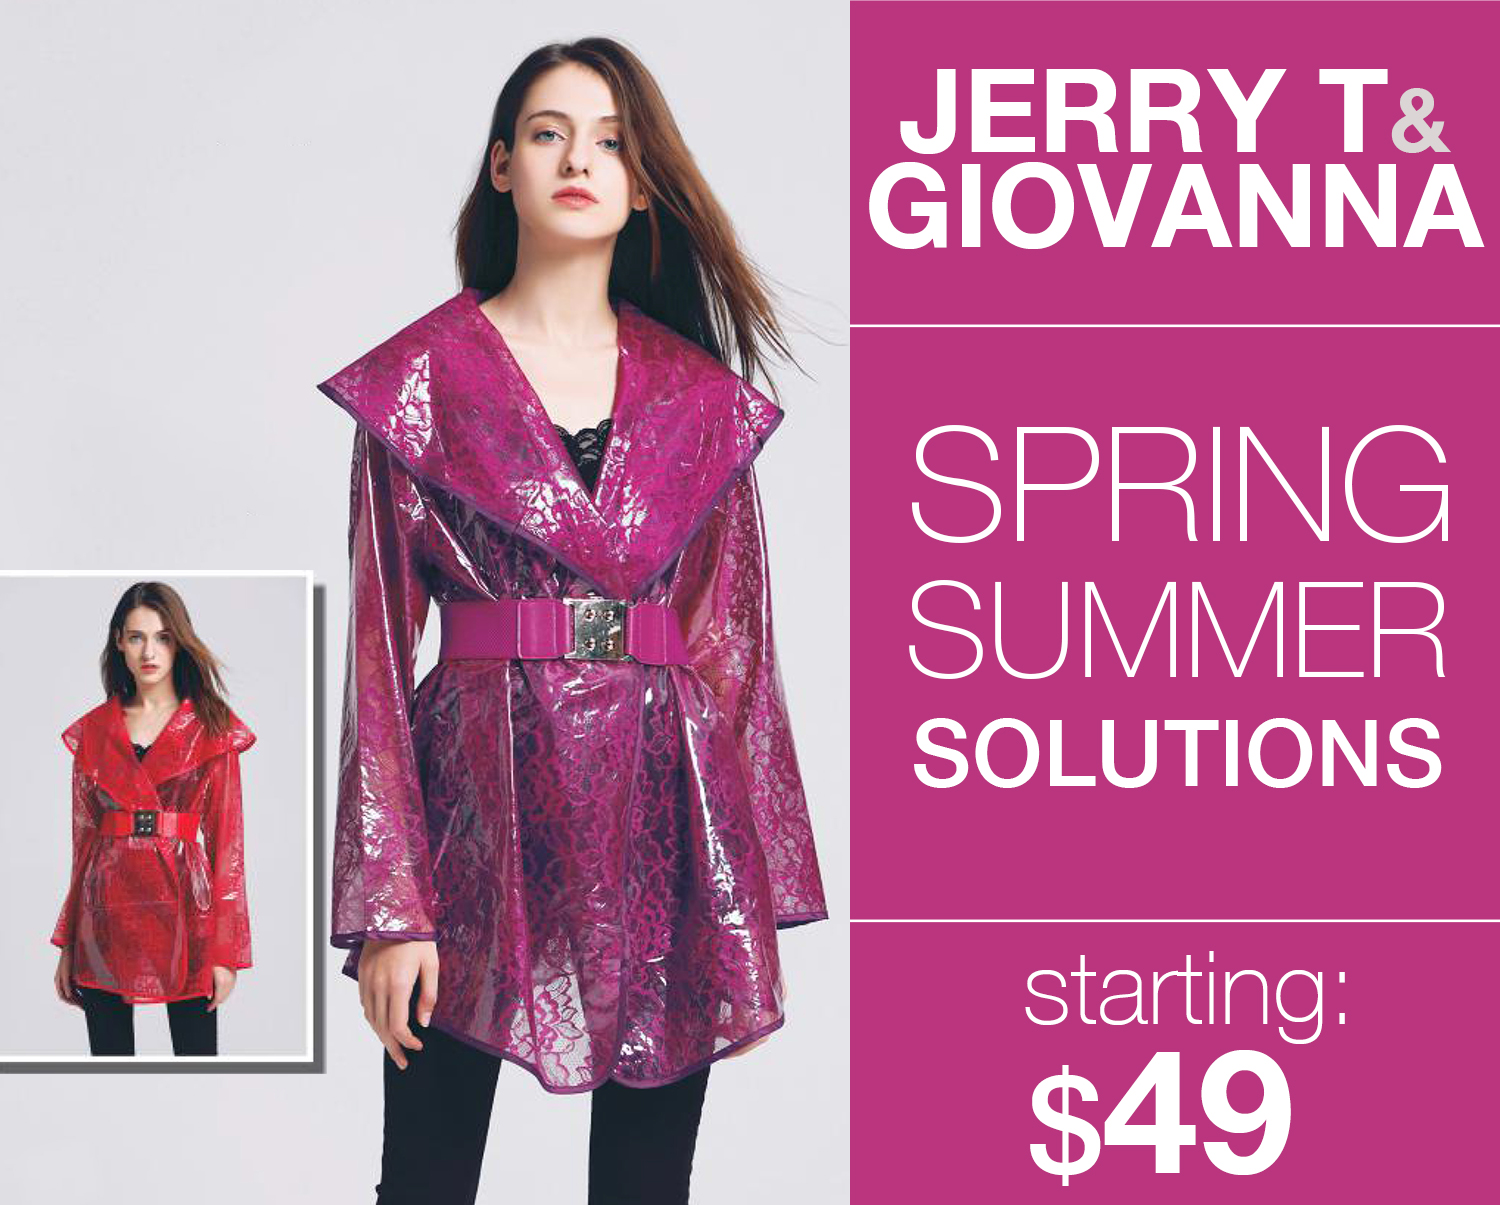 Jerry T With Giovanna High Style Fashions Fall And Hoiday 2018